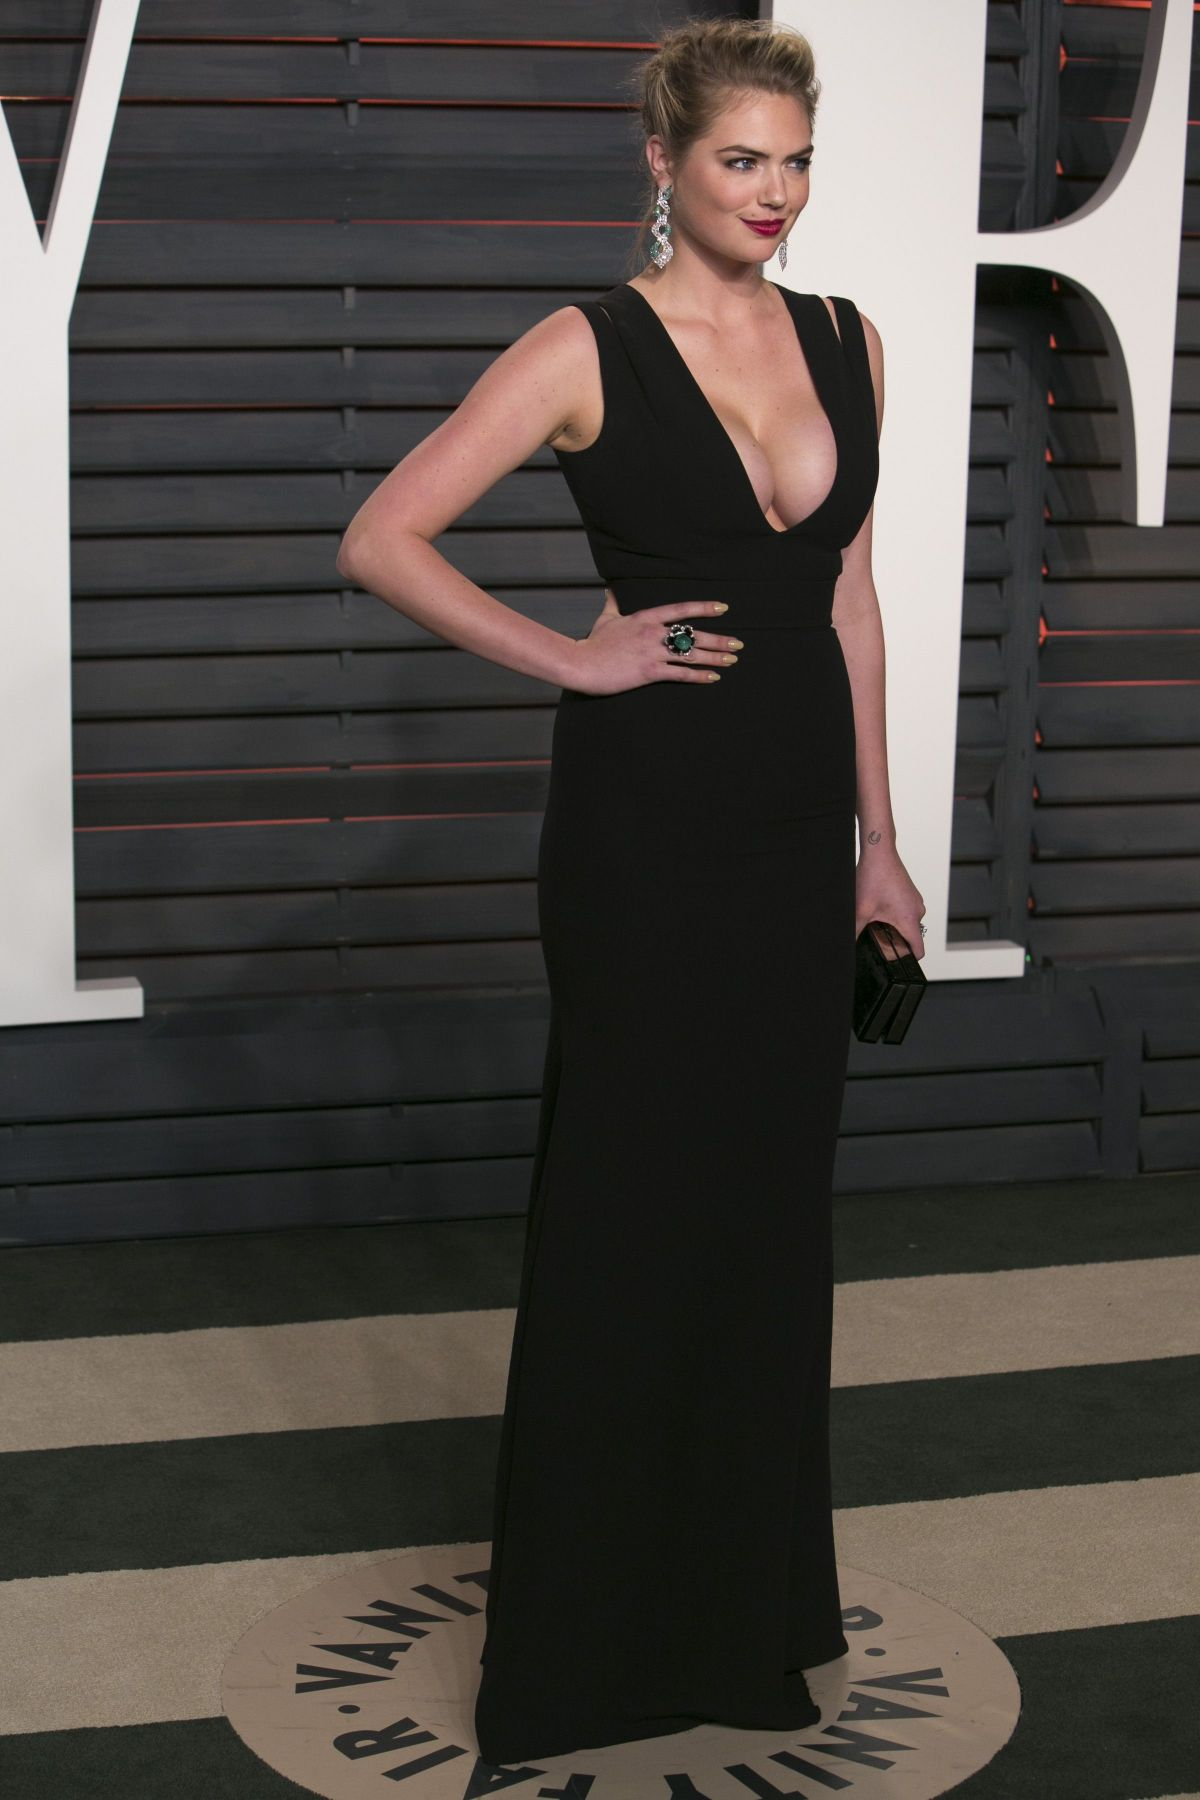 Kate Upton At Vanity Fair Oscar 2016 Party In Beverly Hills 02 28 2016 Hawtcelebs